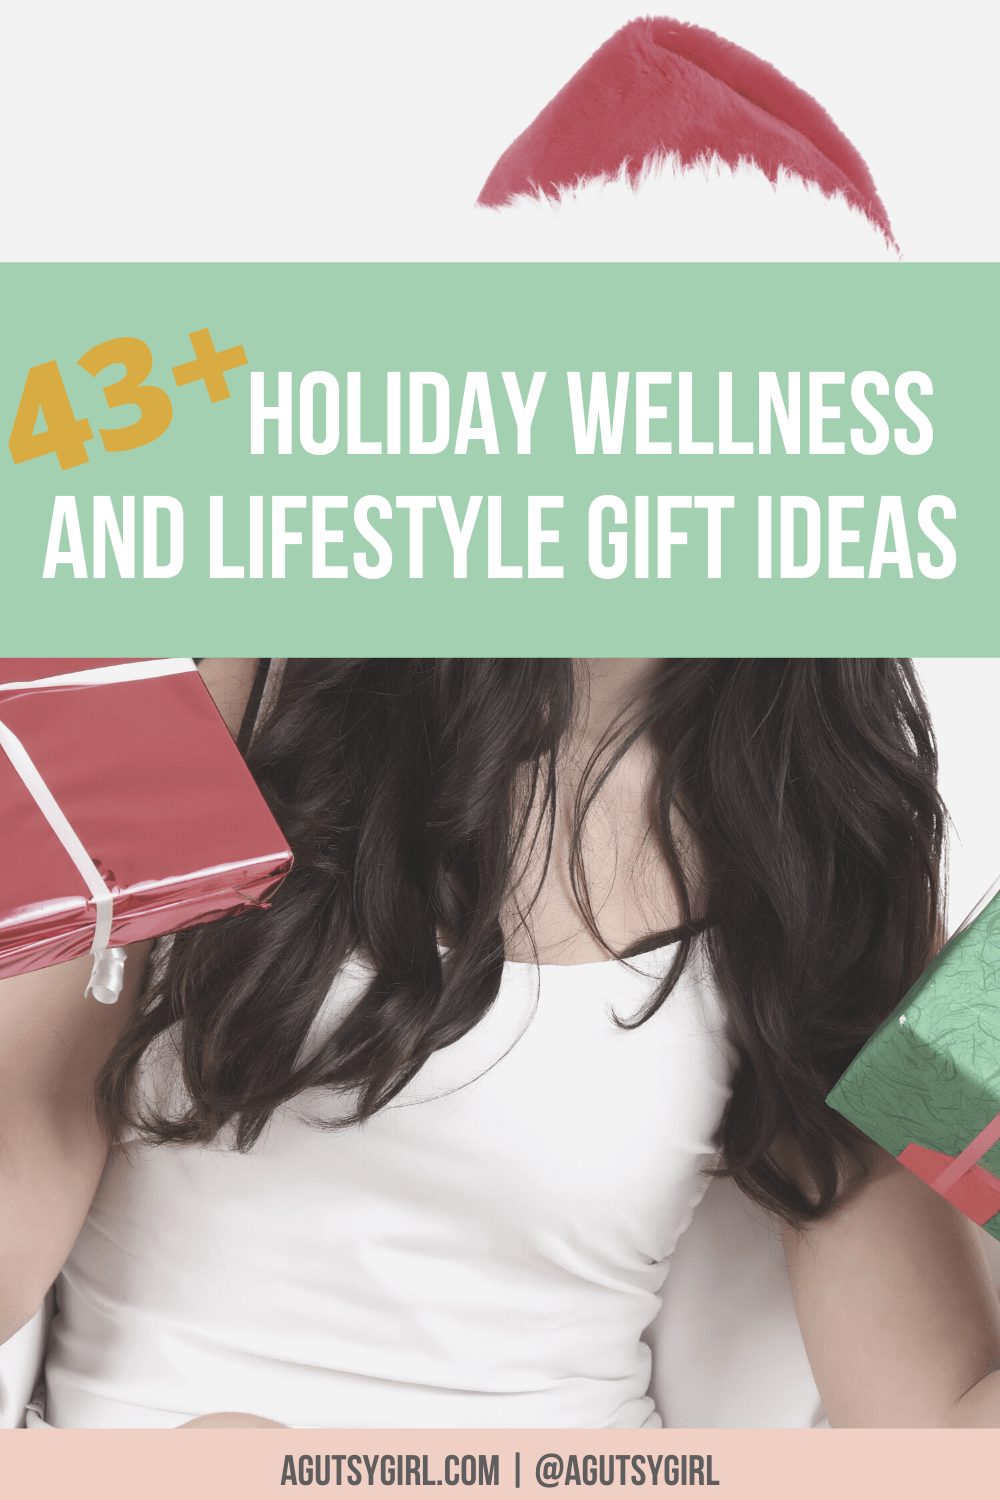 43 Holiday Wellness and Lifestyle Gift Ideas agutsygirl.com #guthealth #holidaygifts #holidaygiftideasforwomen #wellnessgifts